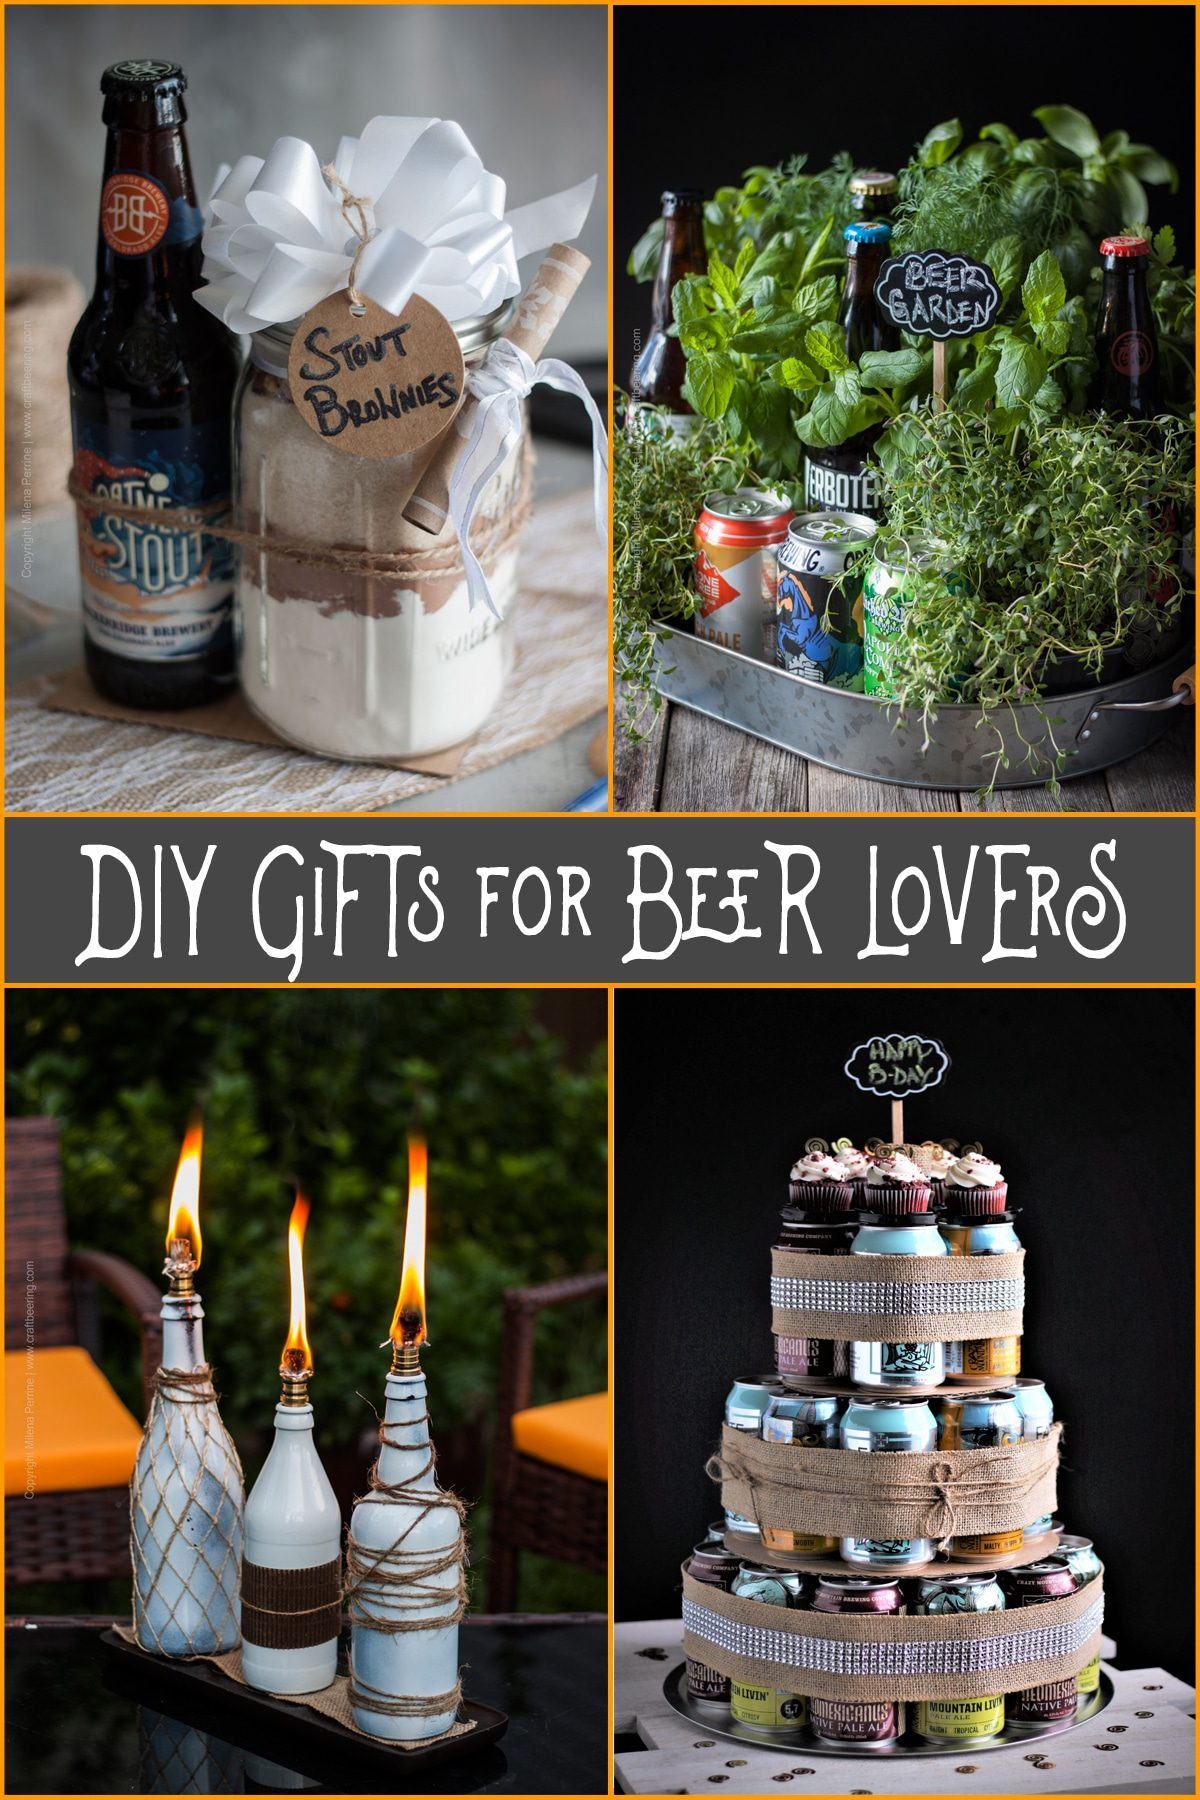 Diy gifts for beer lovers a round of creative ideas diy gifts for beer lovers beer themed gifts you can make that they will love solutioingenieria Images